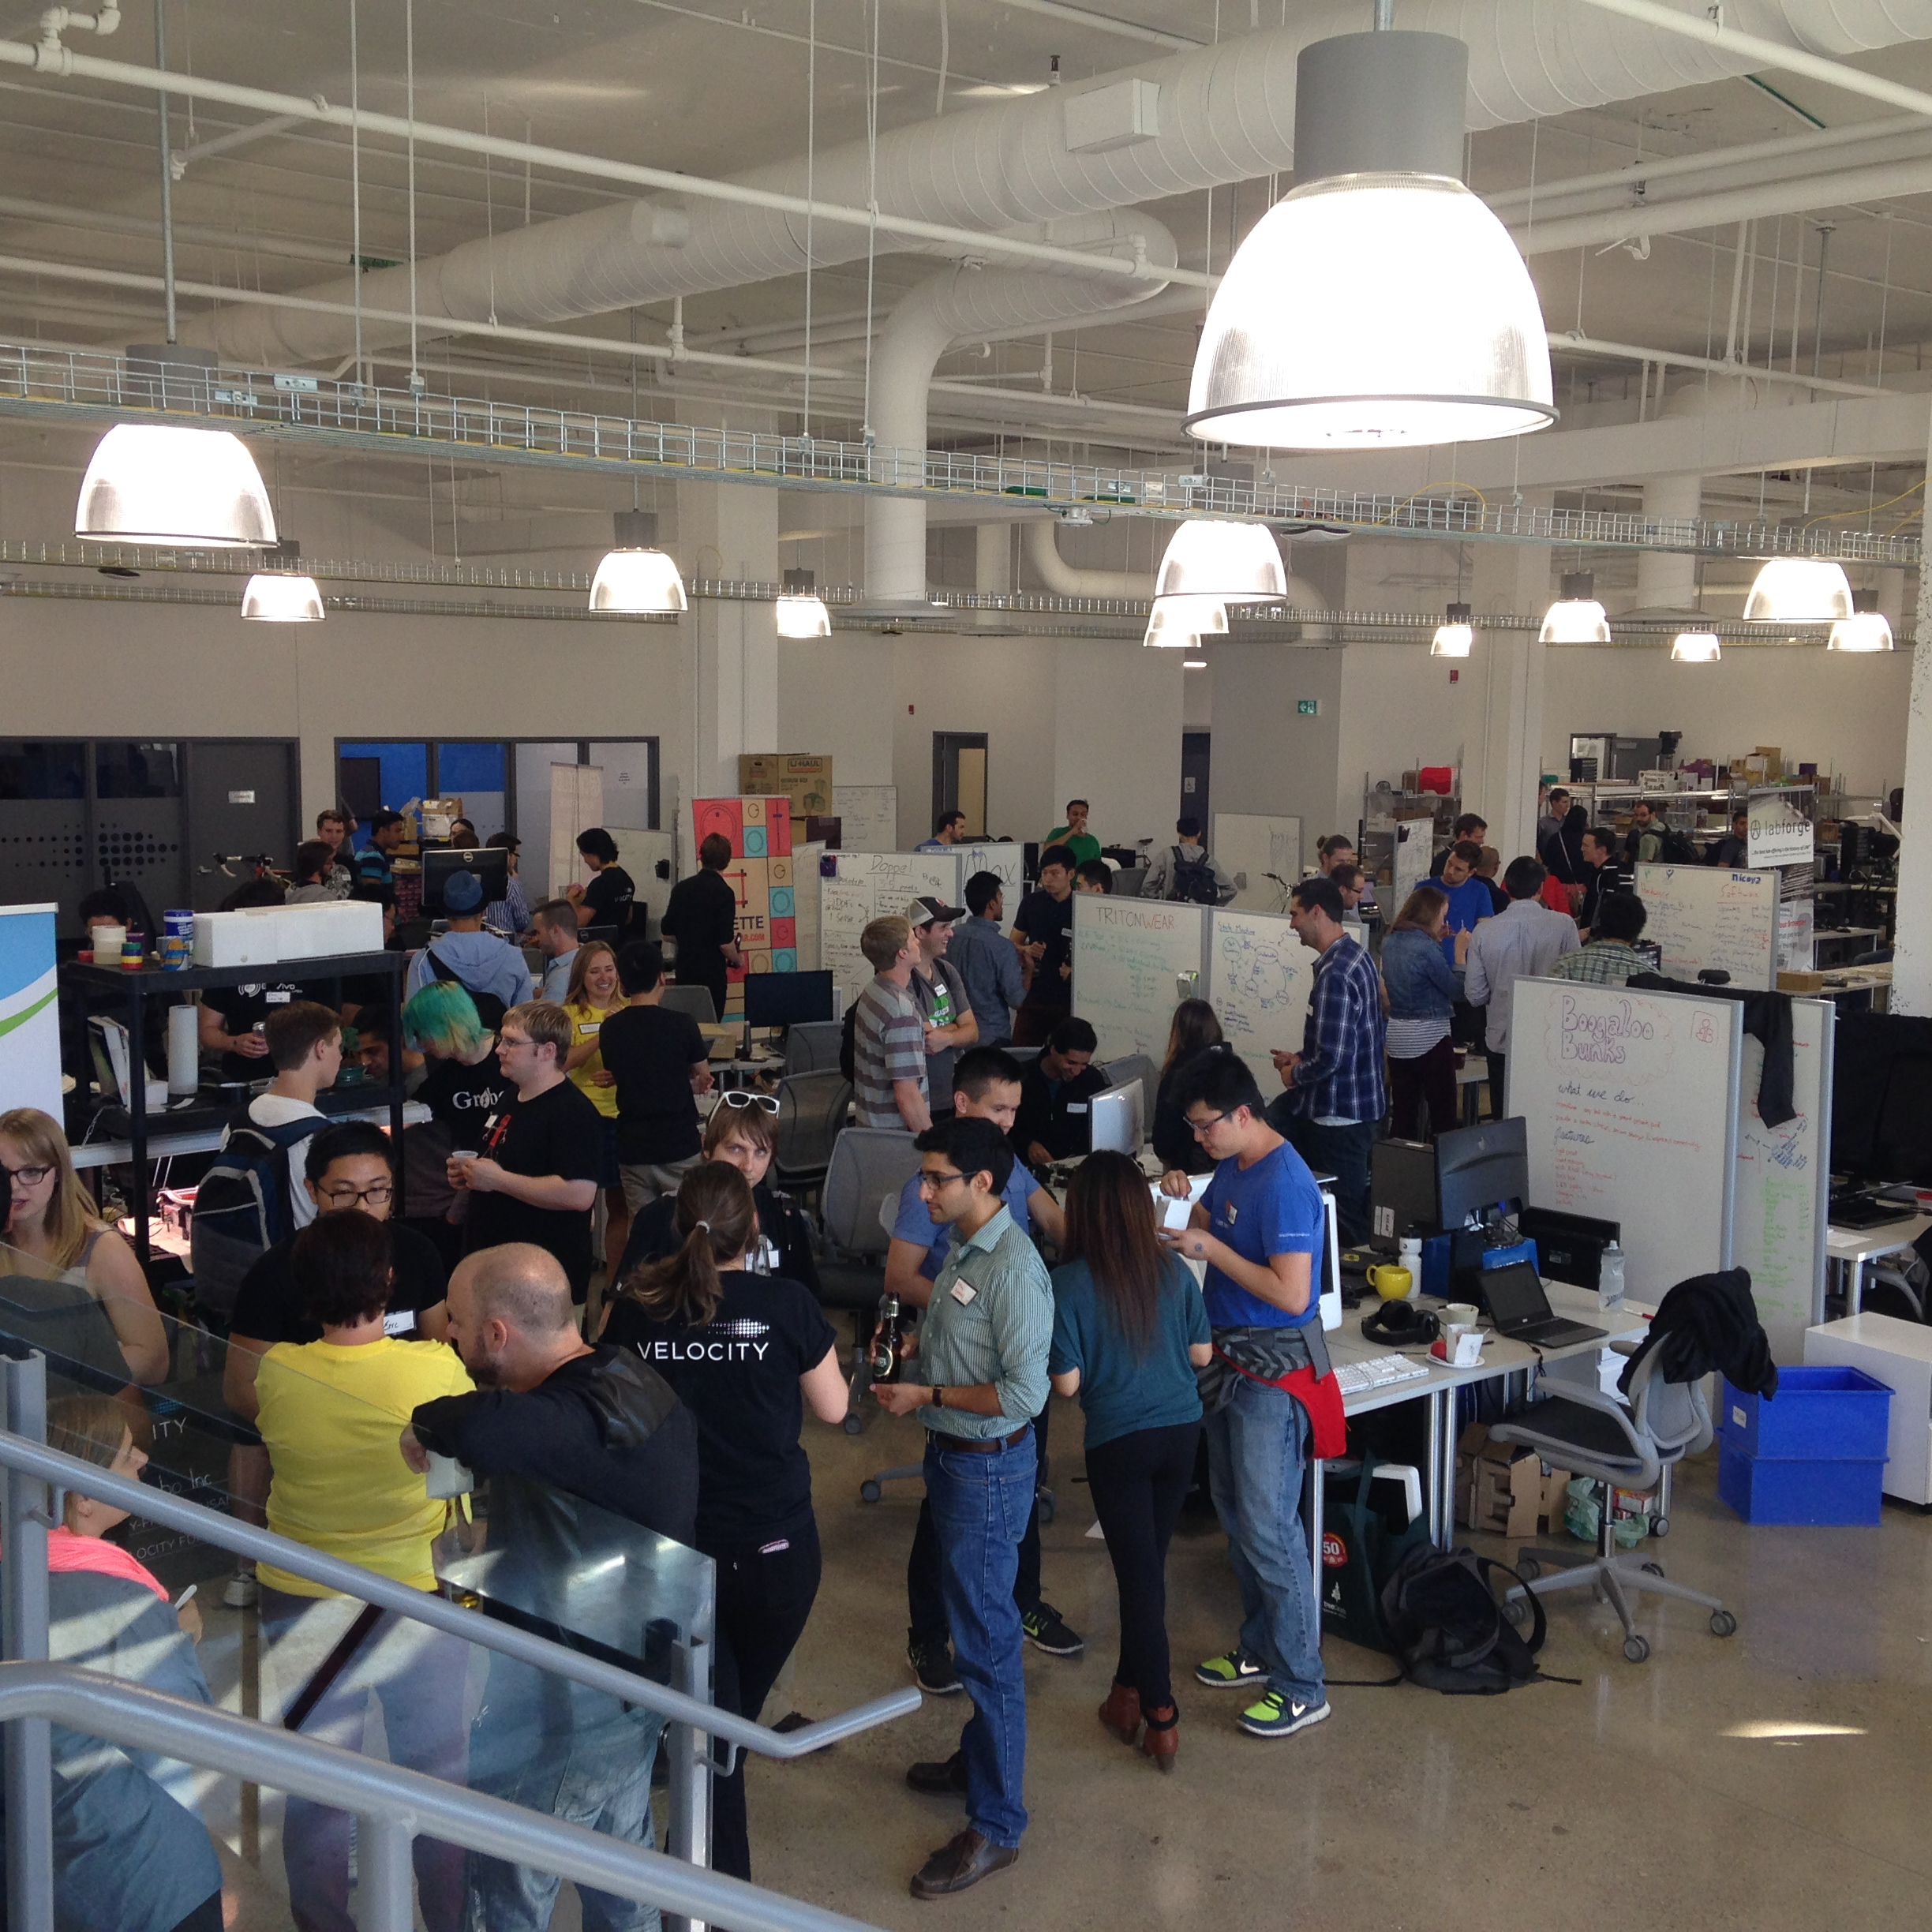 The crowd of people at the Velocity Foundry open house